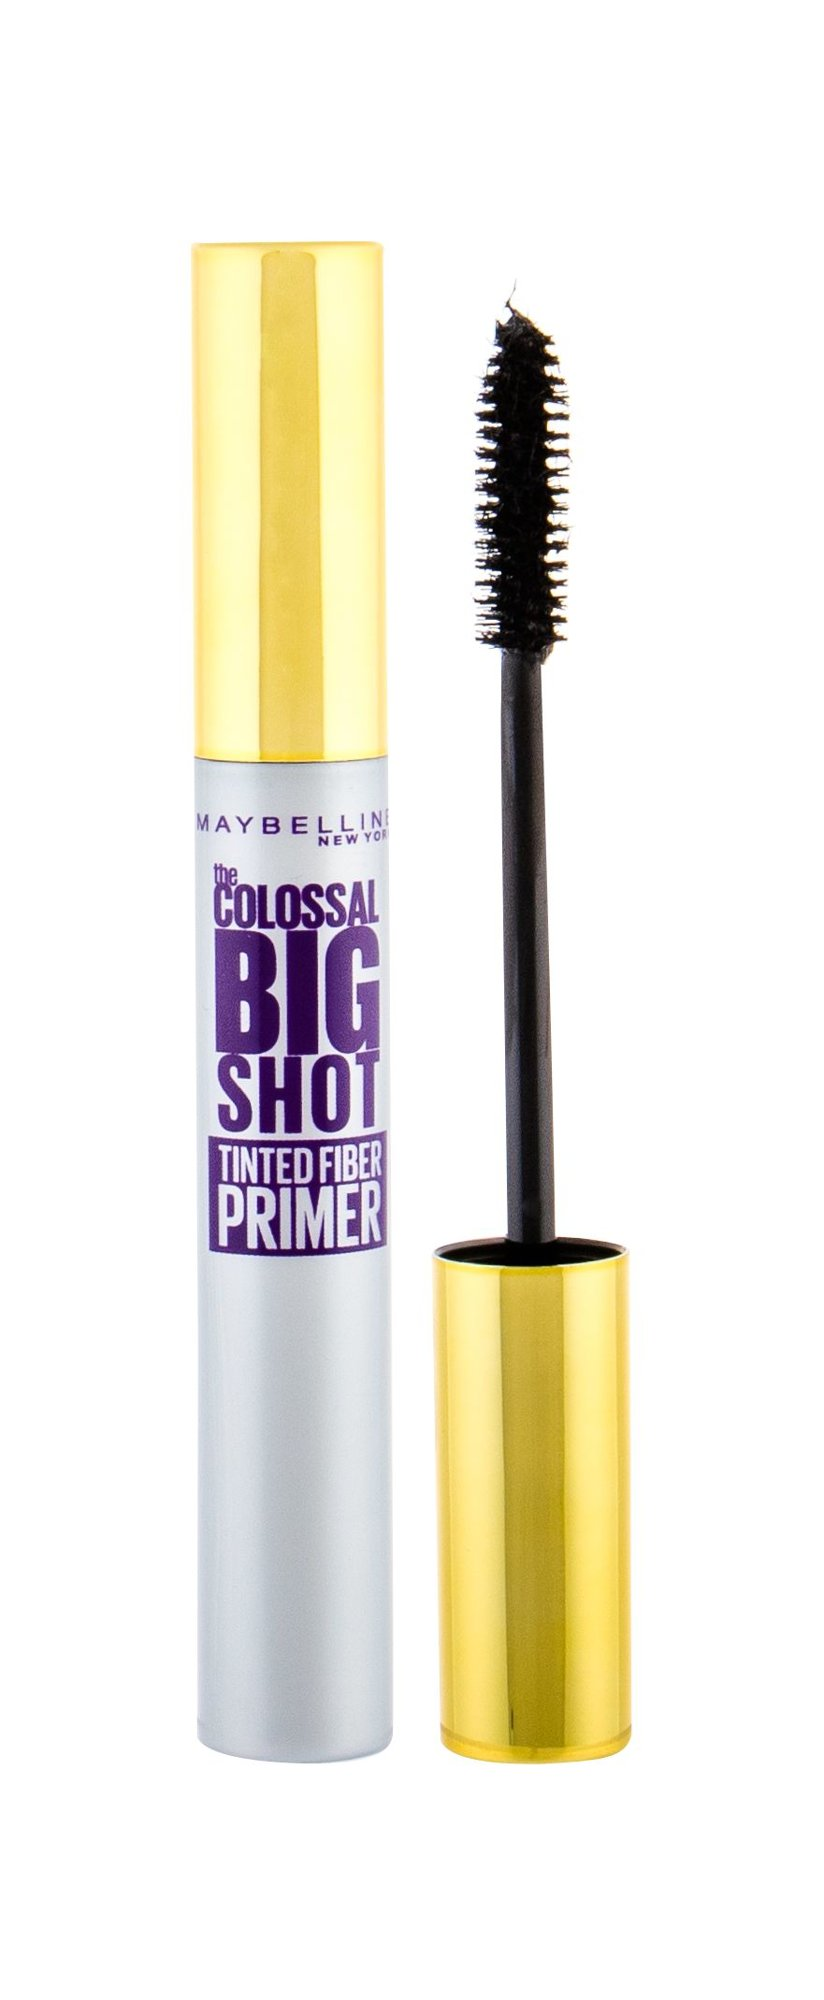 Maybelline Colossal Big Shot Primer Lash Primer 8ml Black